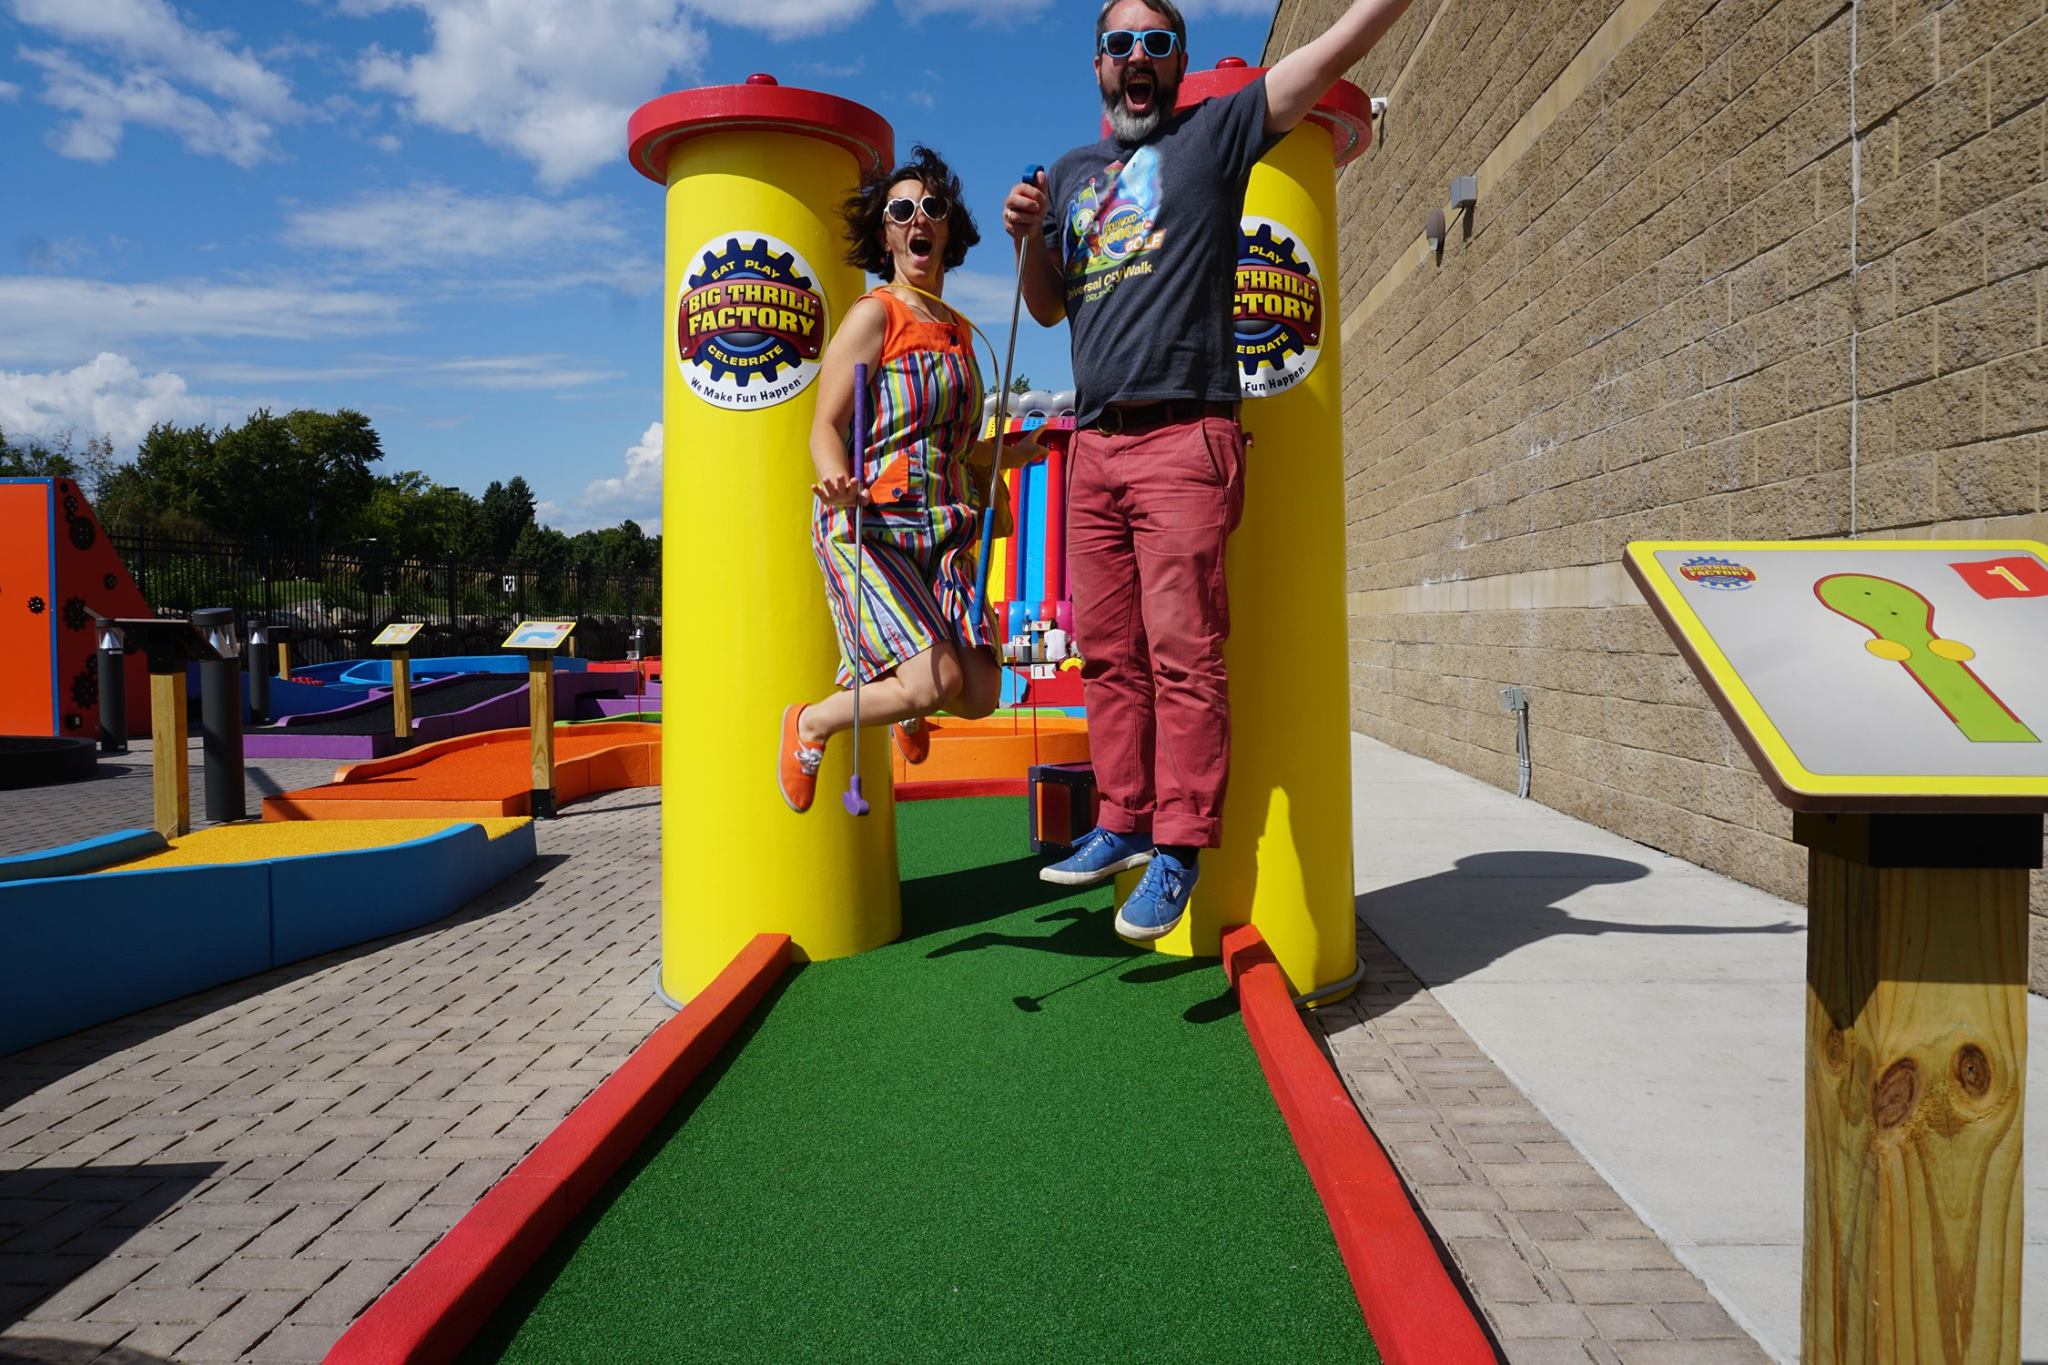 """""""A Couple of Putts"""" Mr. Tee (Tom Loftus) & The Pink Putter (Robin Schwartzman) play, review & document their visit to Big Thrill Factory's signature mini golf course"""